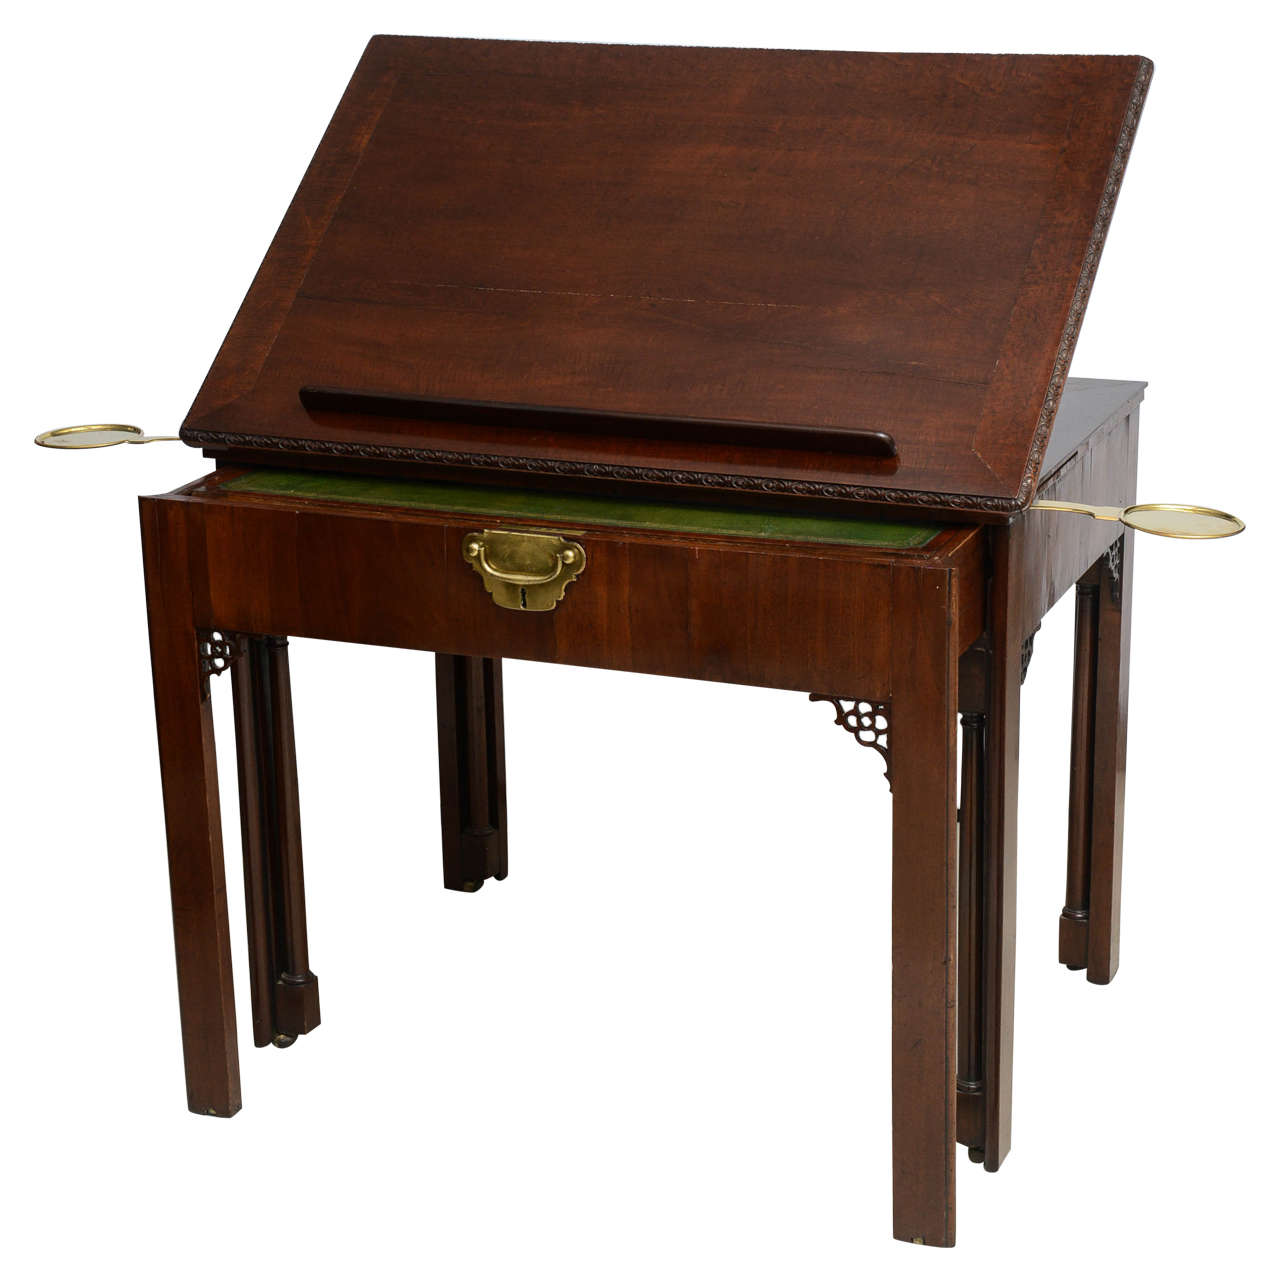 18th century georgian architects desk or writing desk